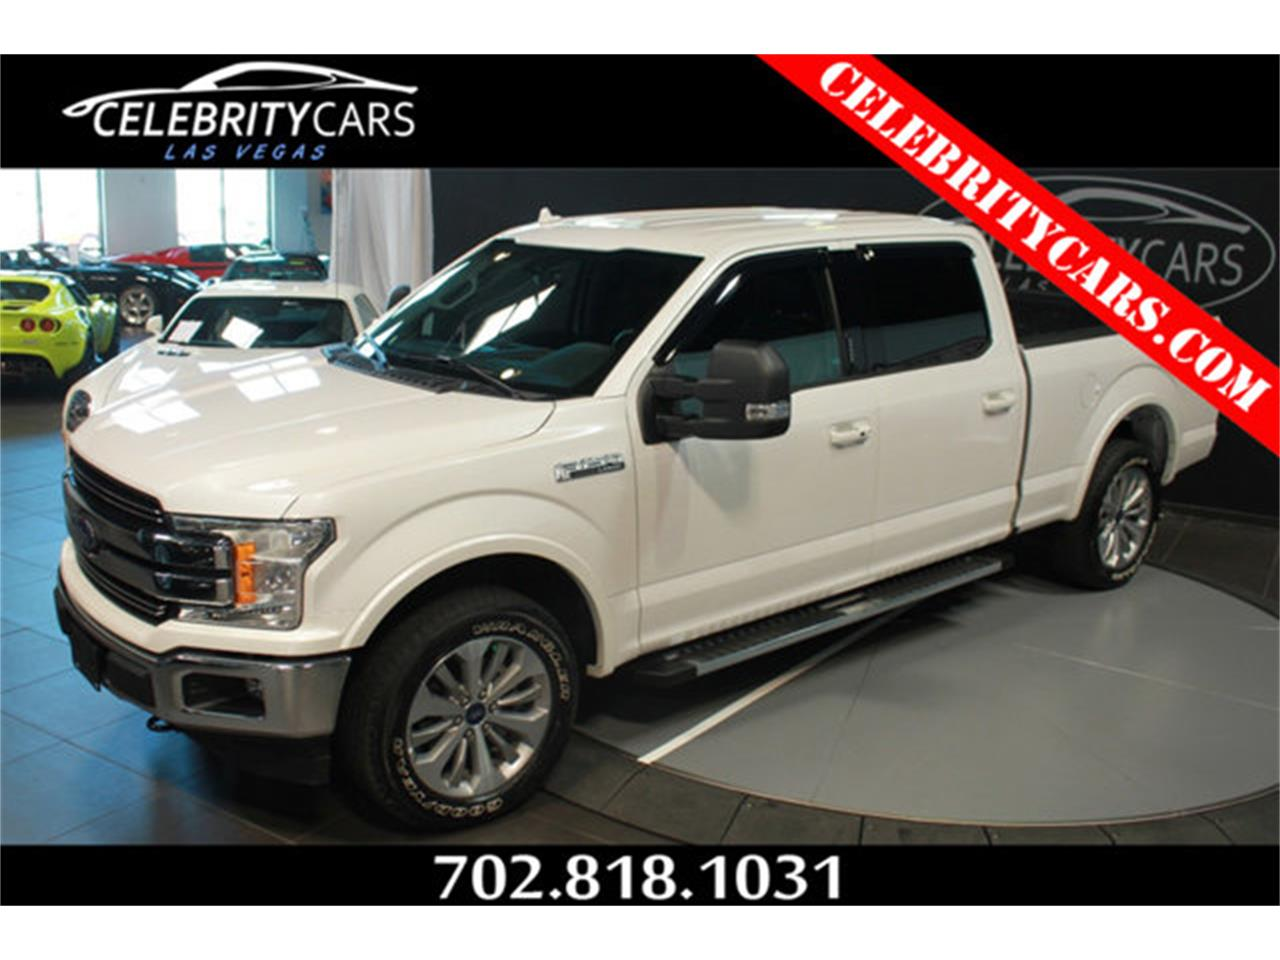 Ford F150 For Sale Las Vegas >> For Sale 2018 Ford F150 In Las Vegas Nevada